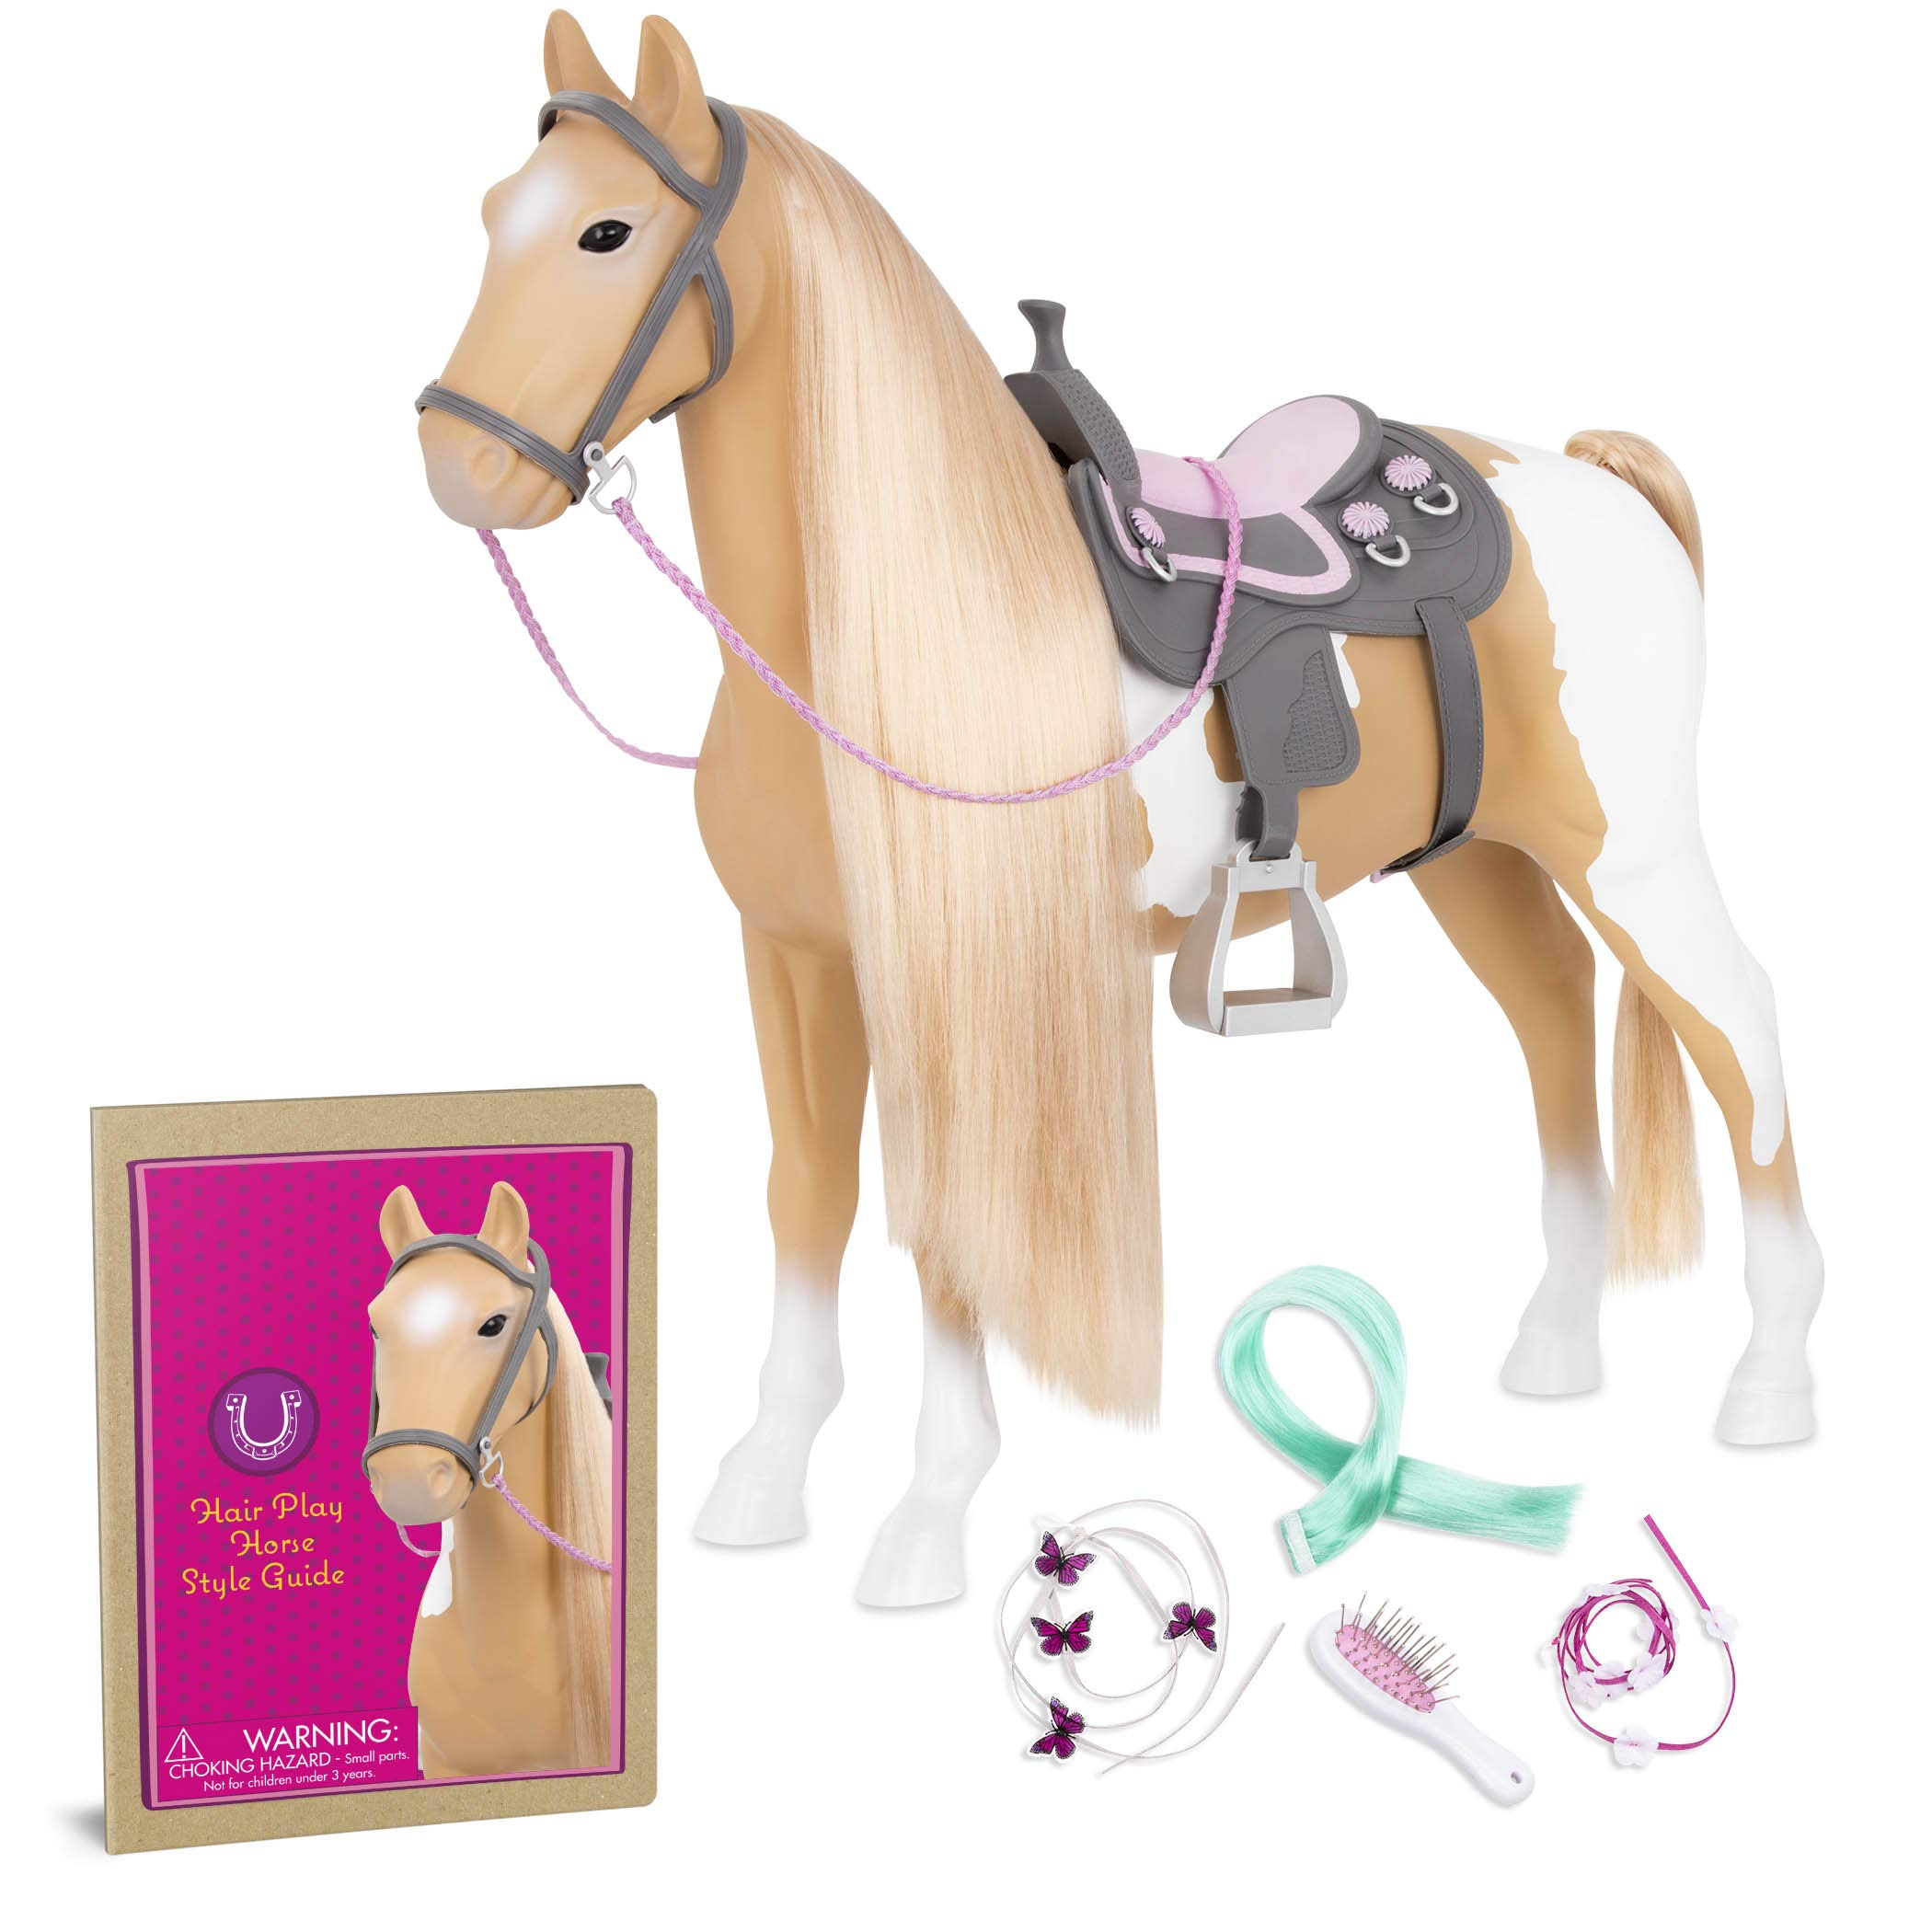 Our Generation By Battat Palomino Paint Horse 20 Hair Play Horse Toys Horse Equestrian Accessories Pets For 18 Dolls For Age 3 Years Up